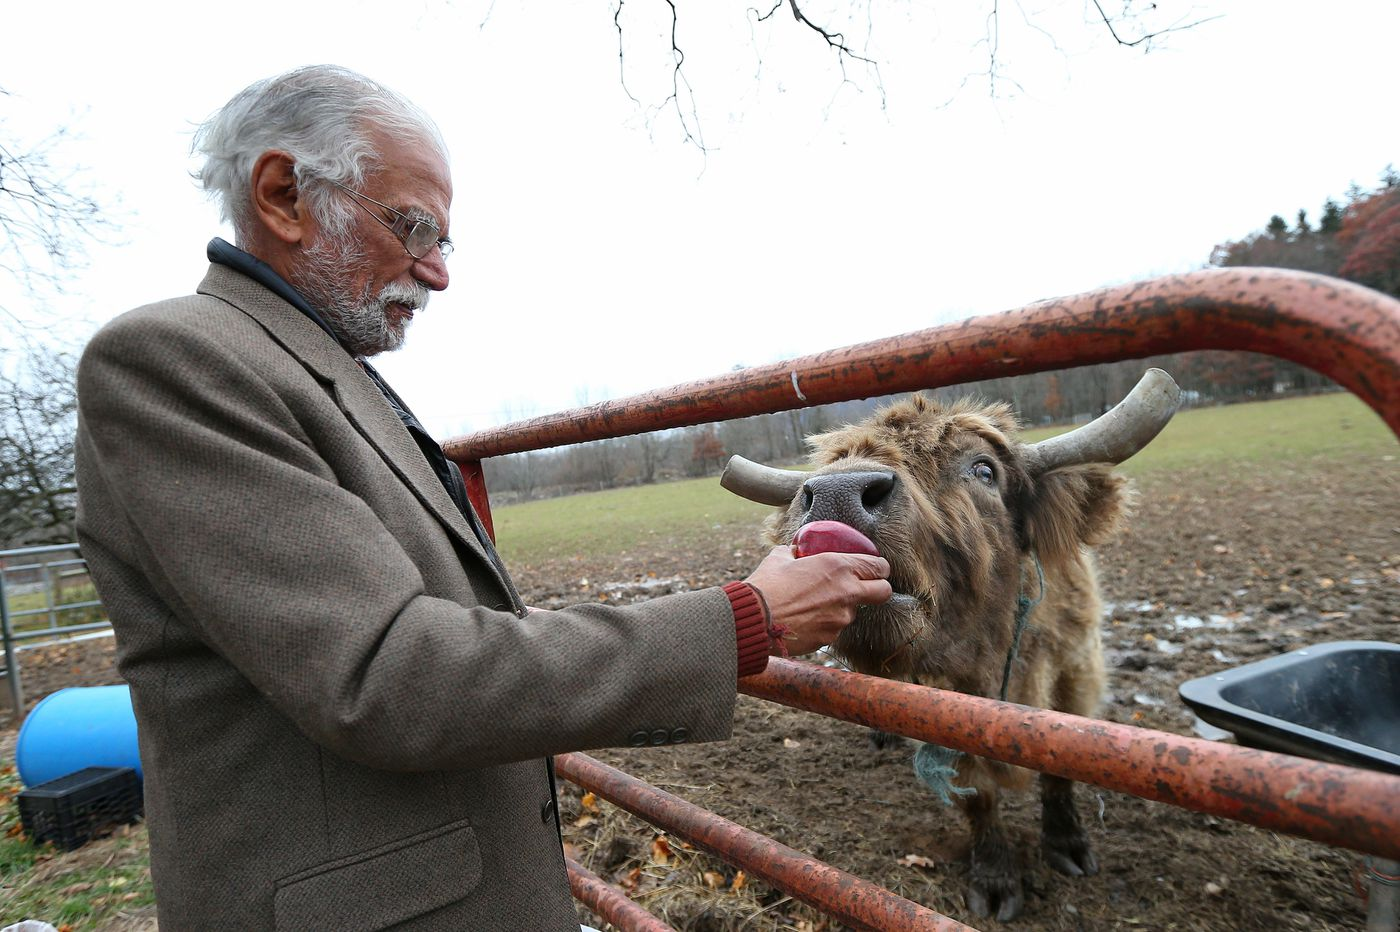 Can being nice to cows save the world? A Hindu man in the Poconos would like to believe so.